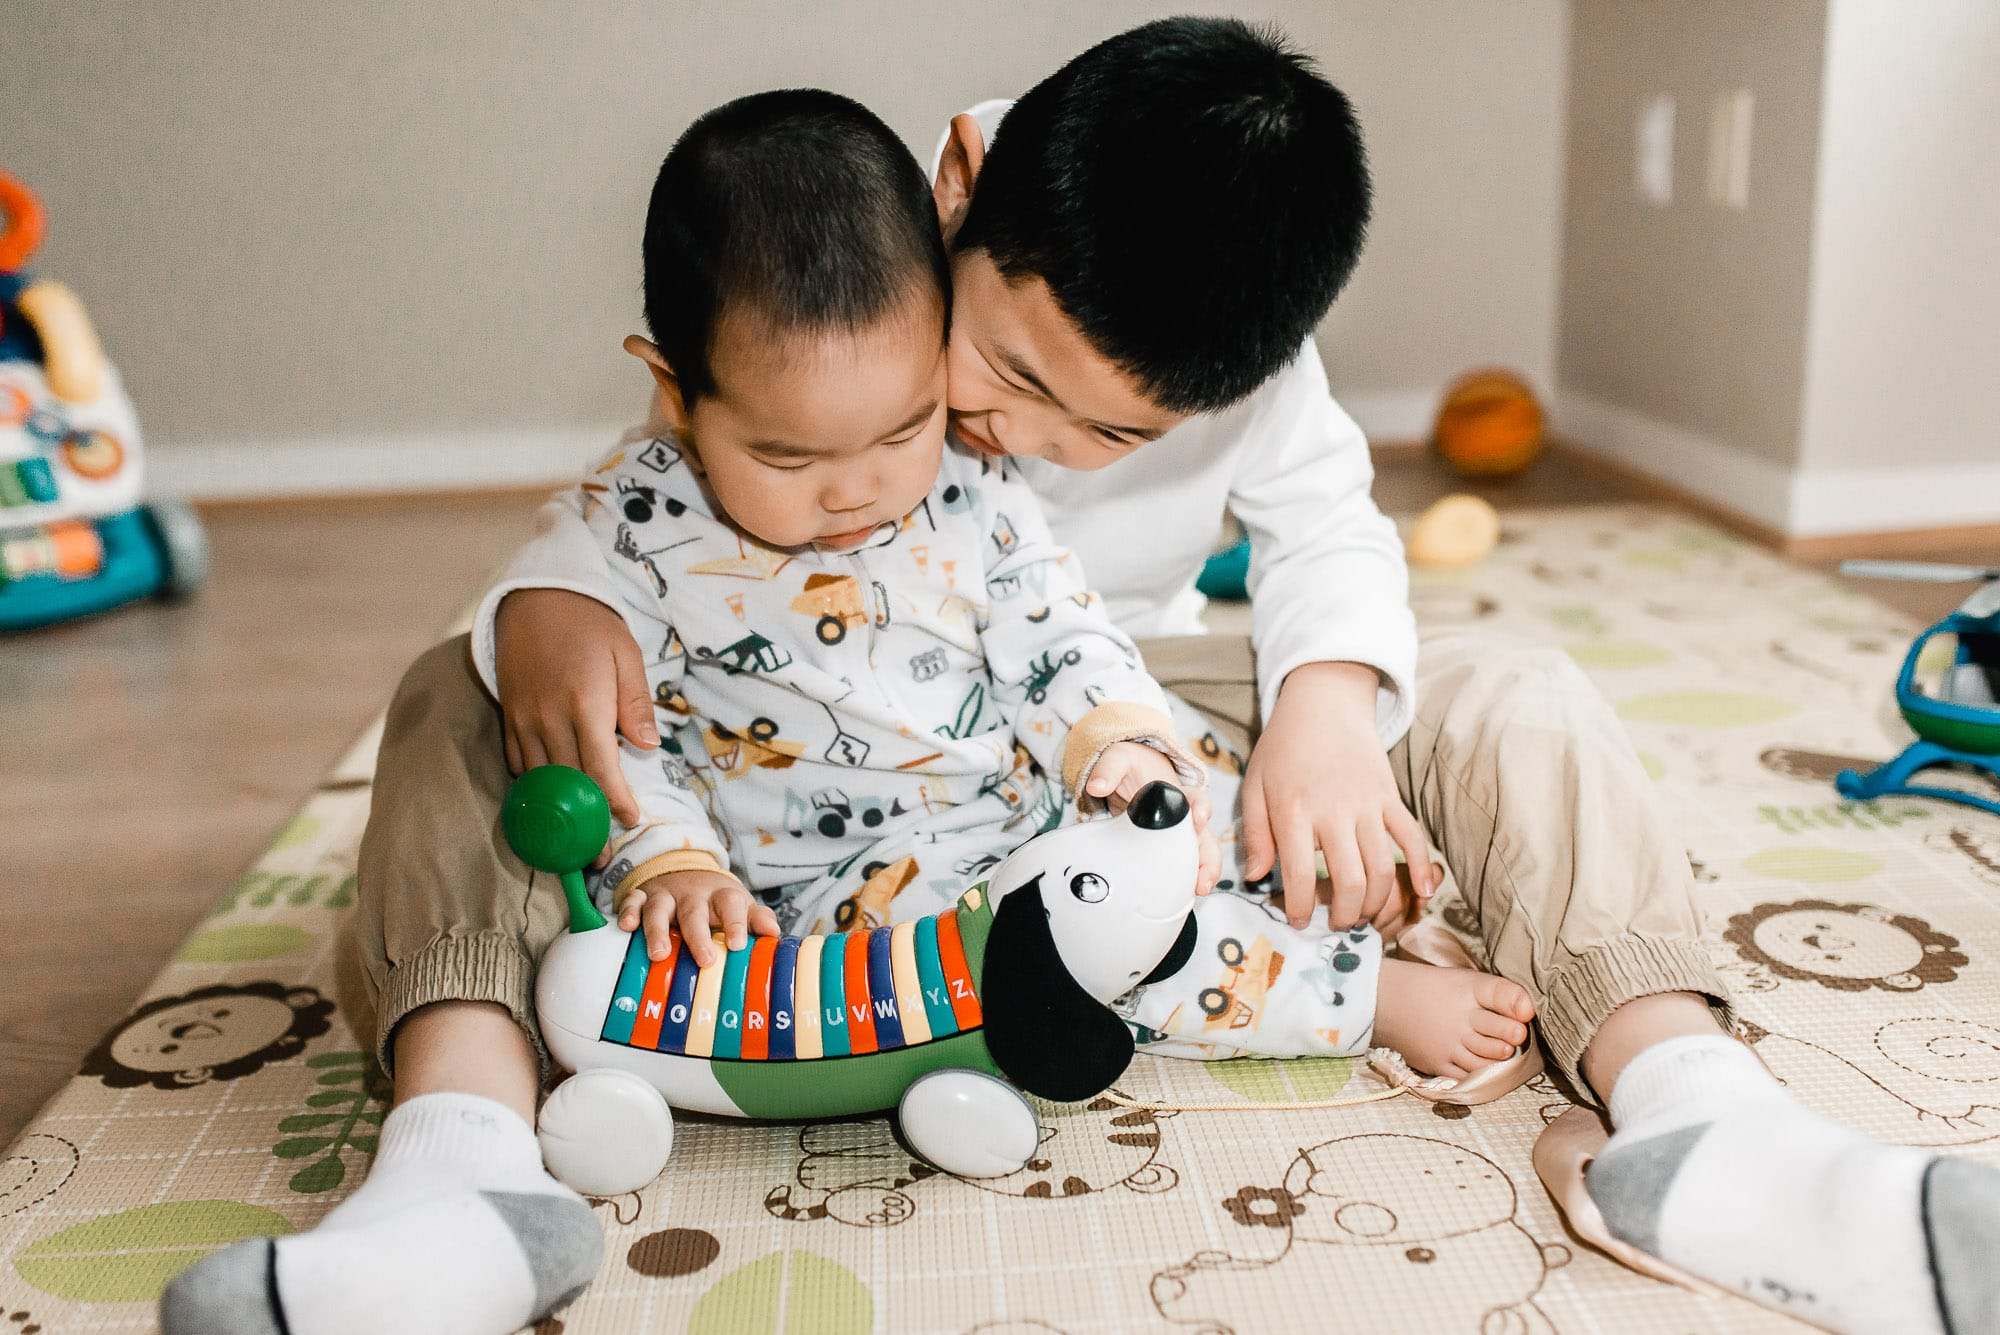 Vancouver Family Photographer captures brother playing